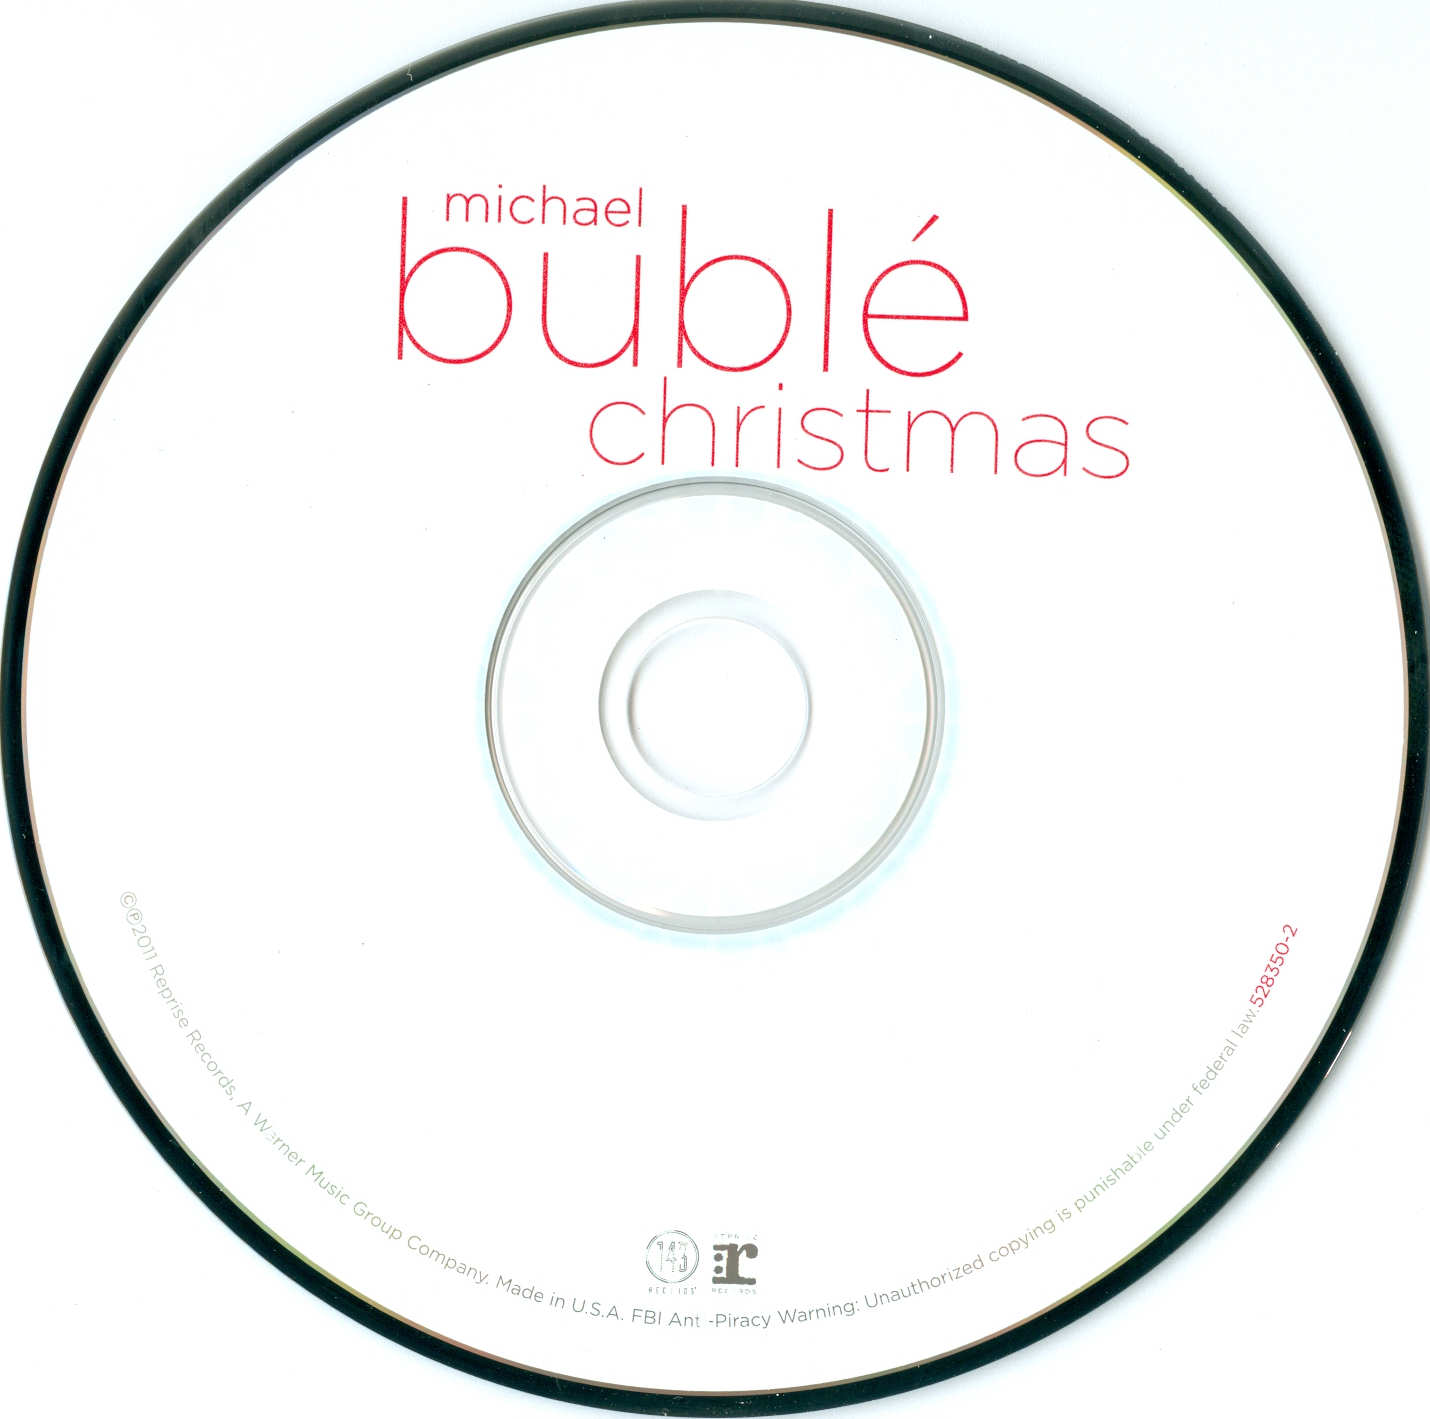 Michael Buble Weihnachten.Christmas Cd Covers Monza Berglauf Verband Com